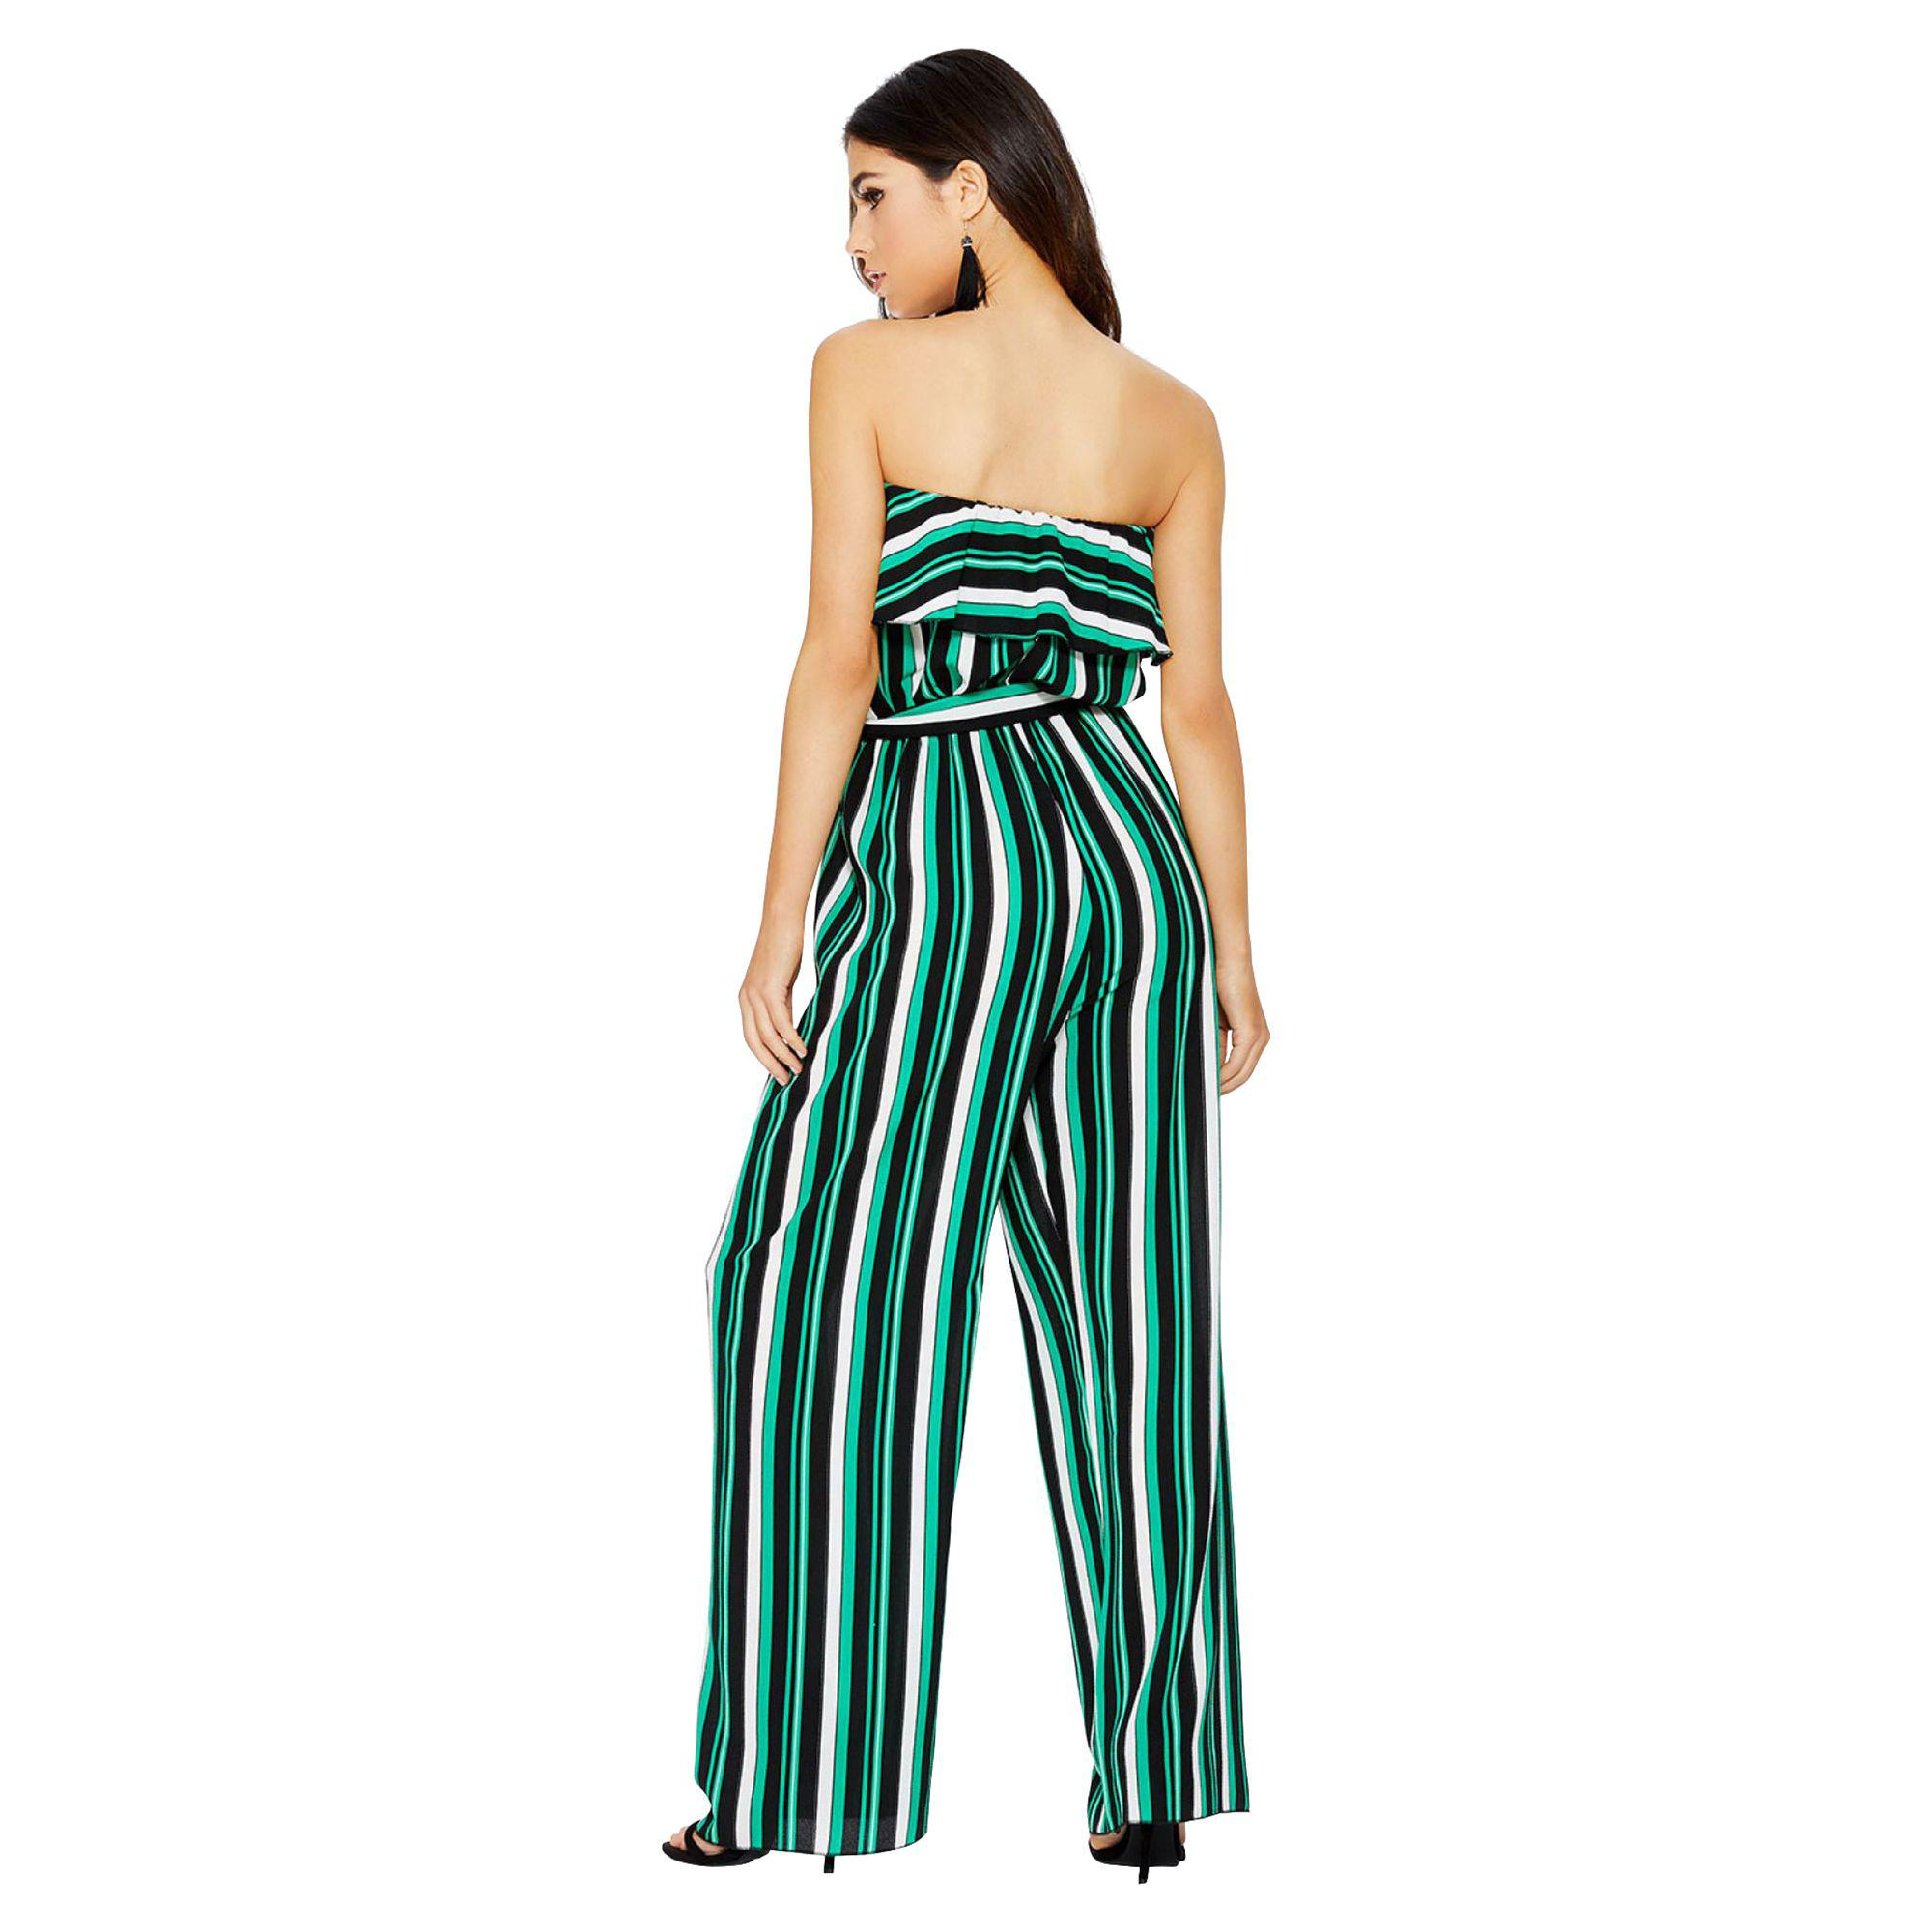 ebc7c5d71 Quiz Green Black And White Stripe Jumpsuit in Green - Lyst